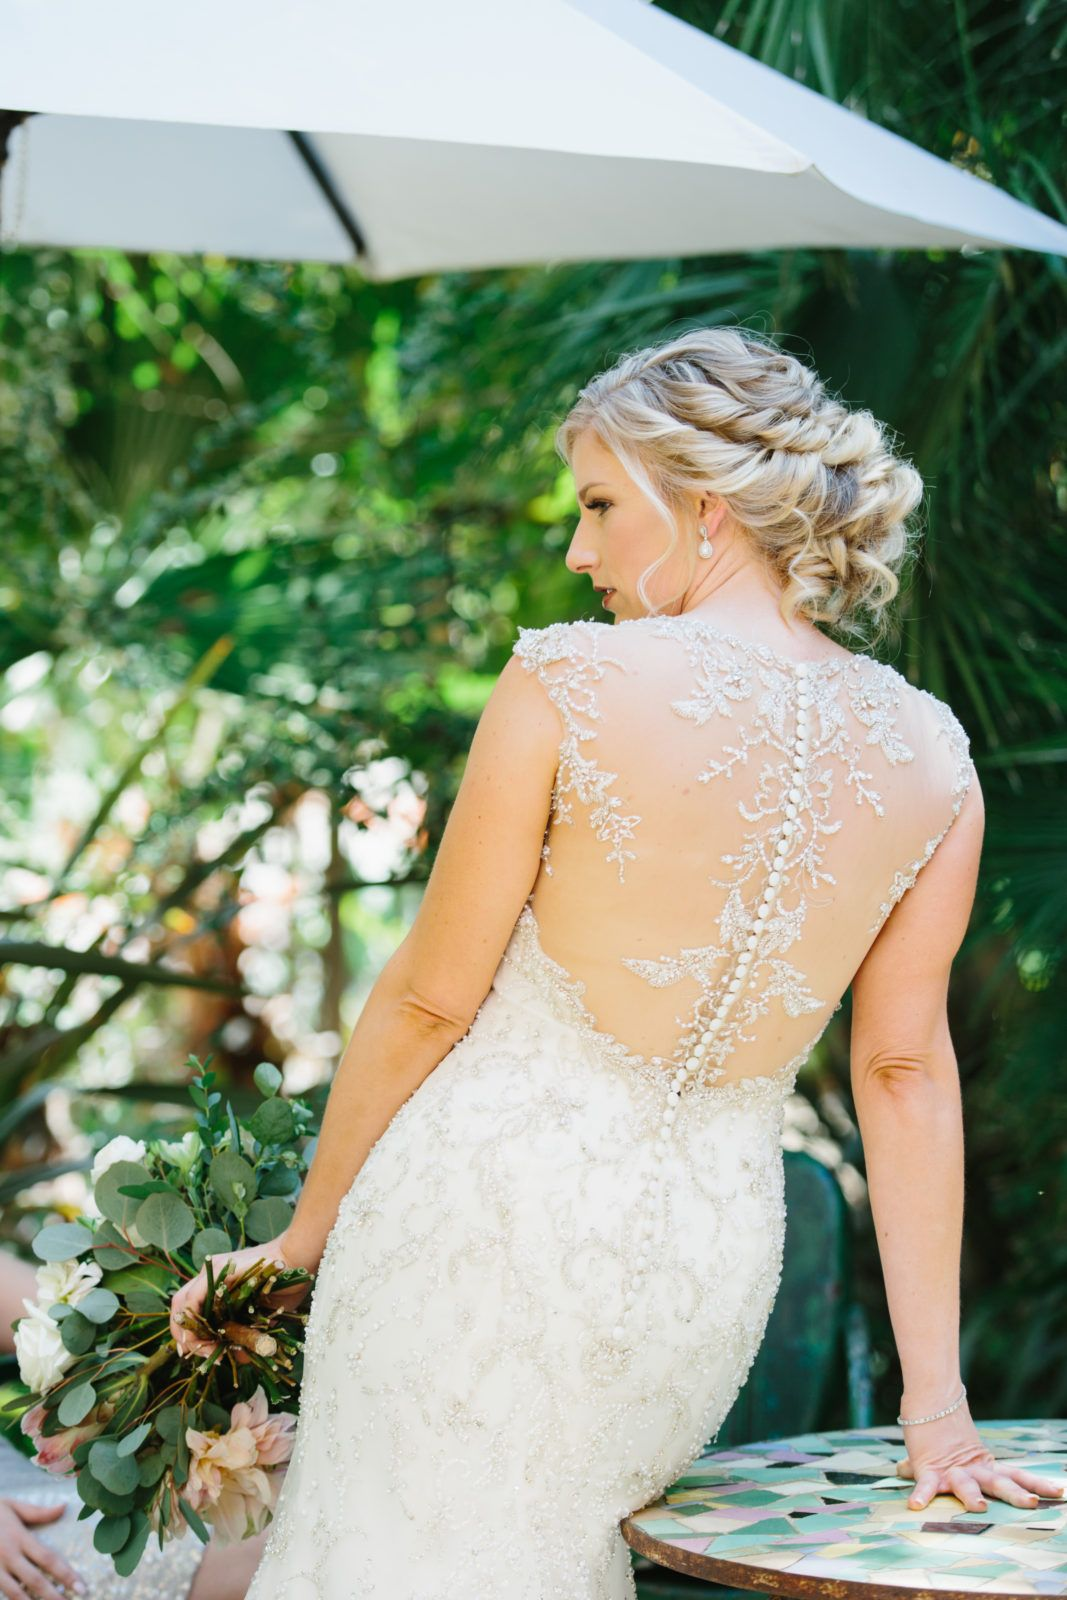 Travel Themed Wedding At Mountain Mermaid Bride With Illusion Back And Button Dress: Mountain Themed Wedding Dress At Websimilar.org